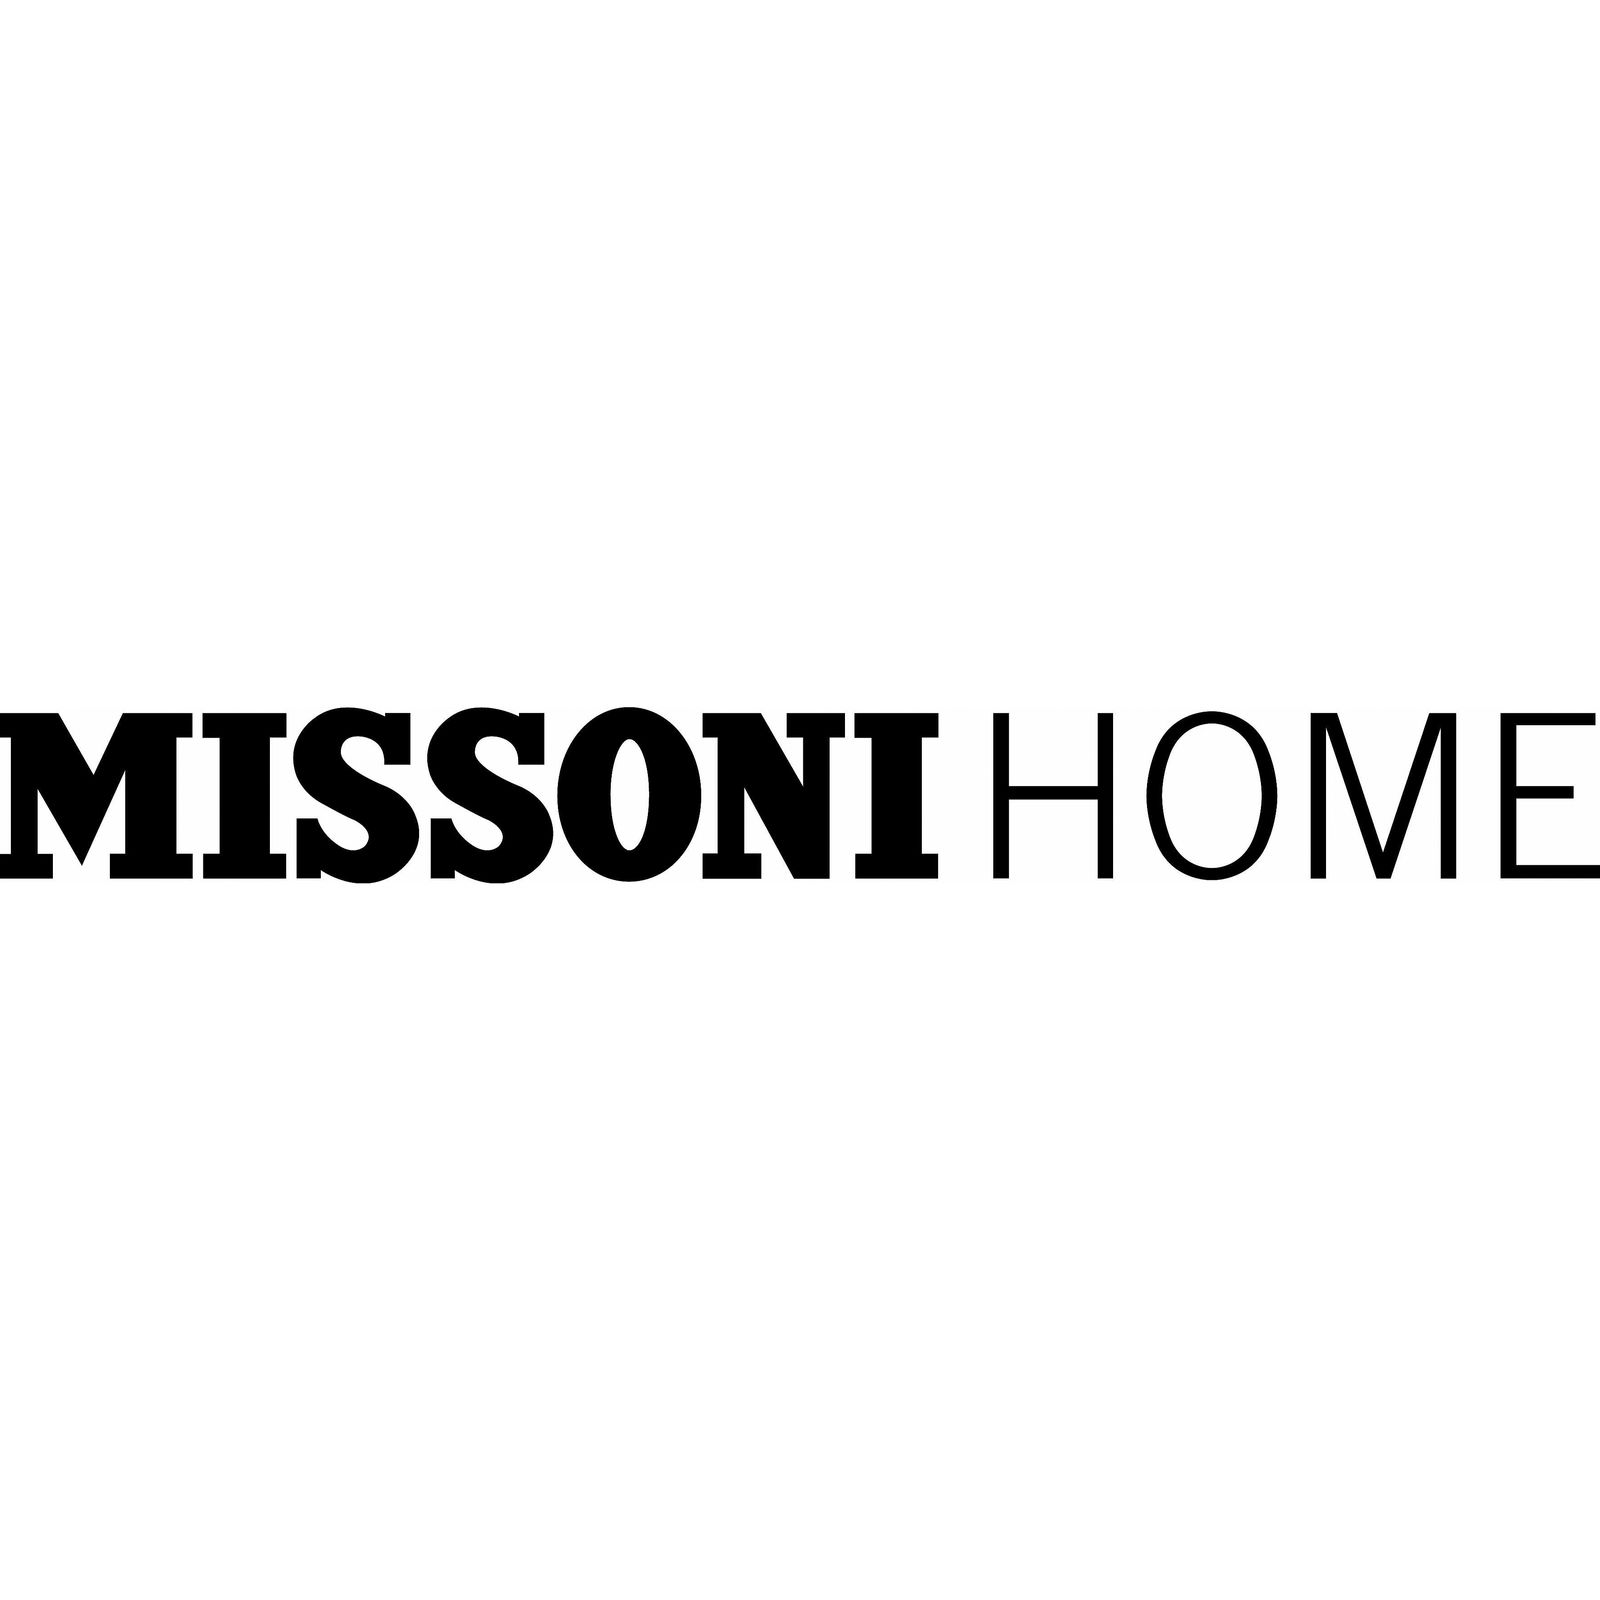 MISSONI HOME (Bild 1)